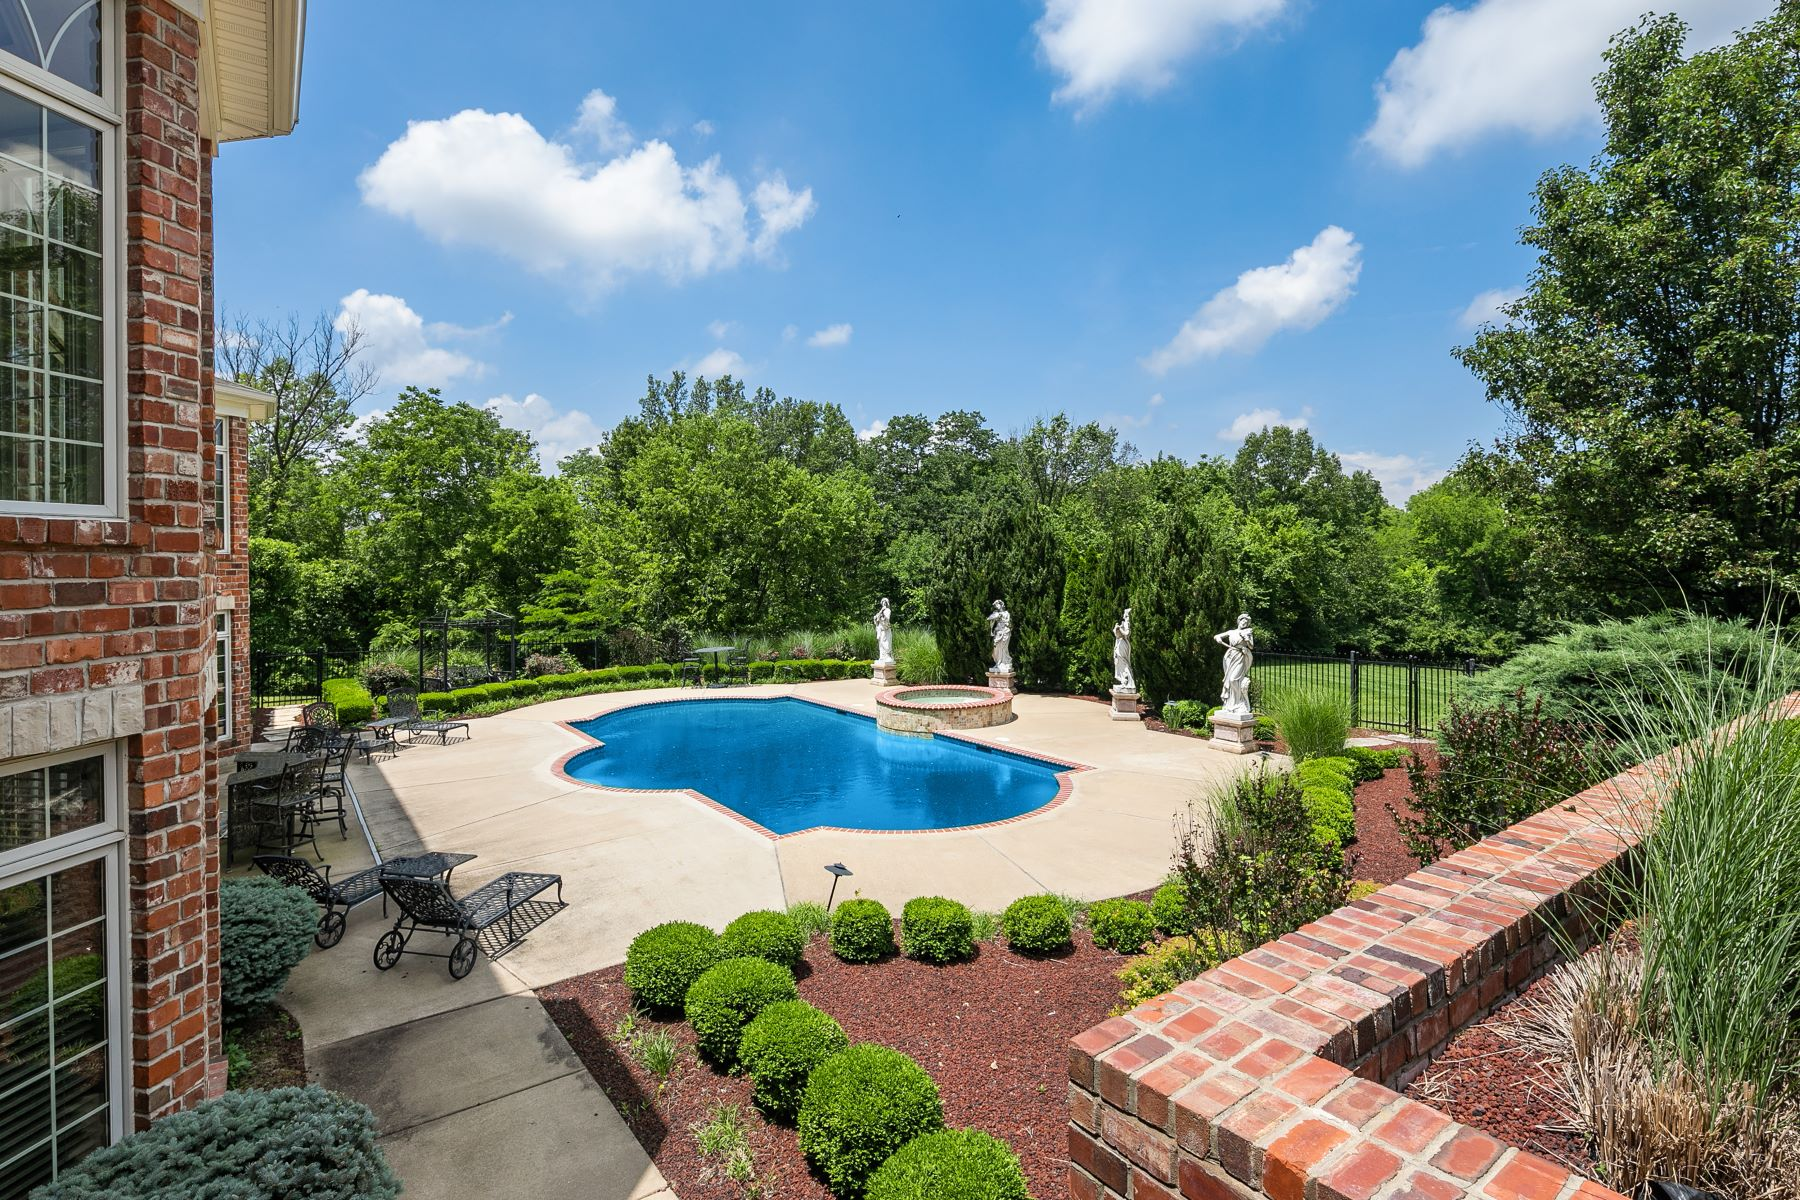 Additional photo for property listing at Stunning Sophisticated Upper Whitmoor Estate 11 Upper Whitmoor Drive Weldon Spring, Missouri 63304 United States